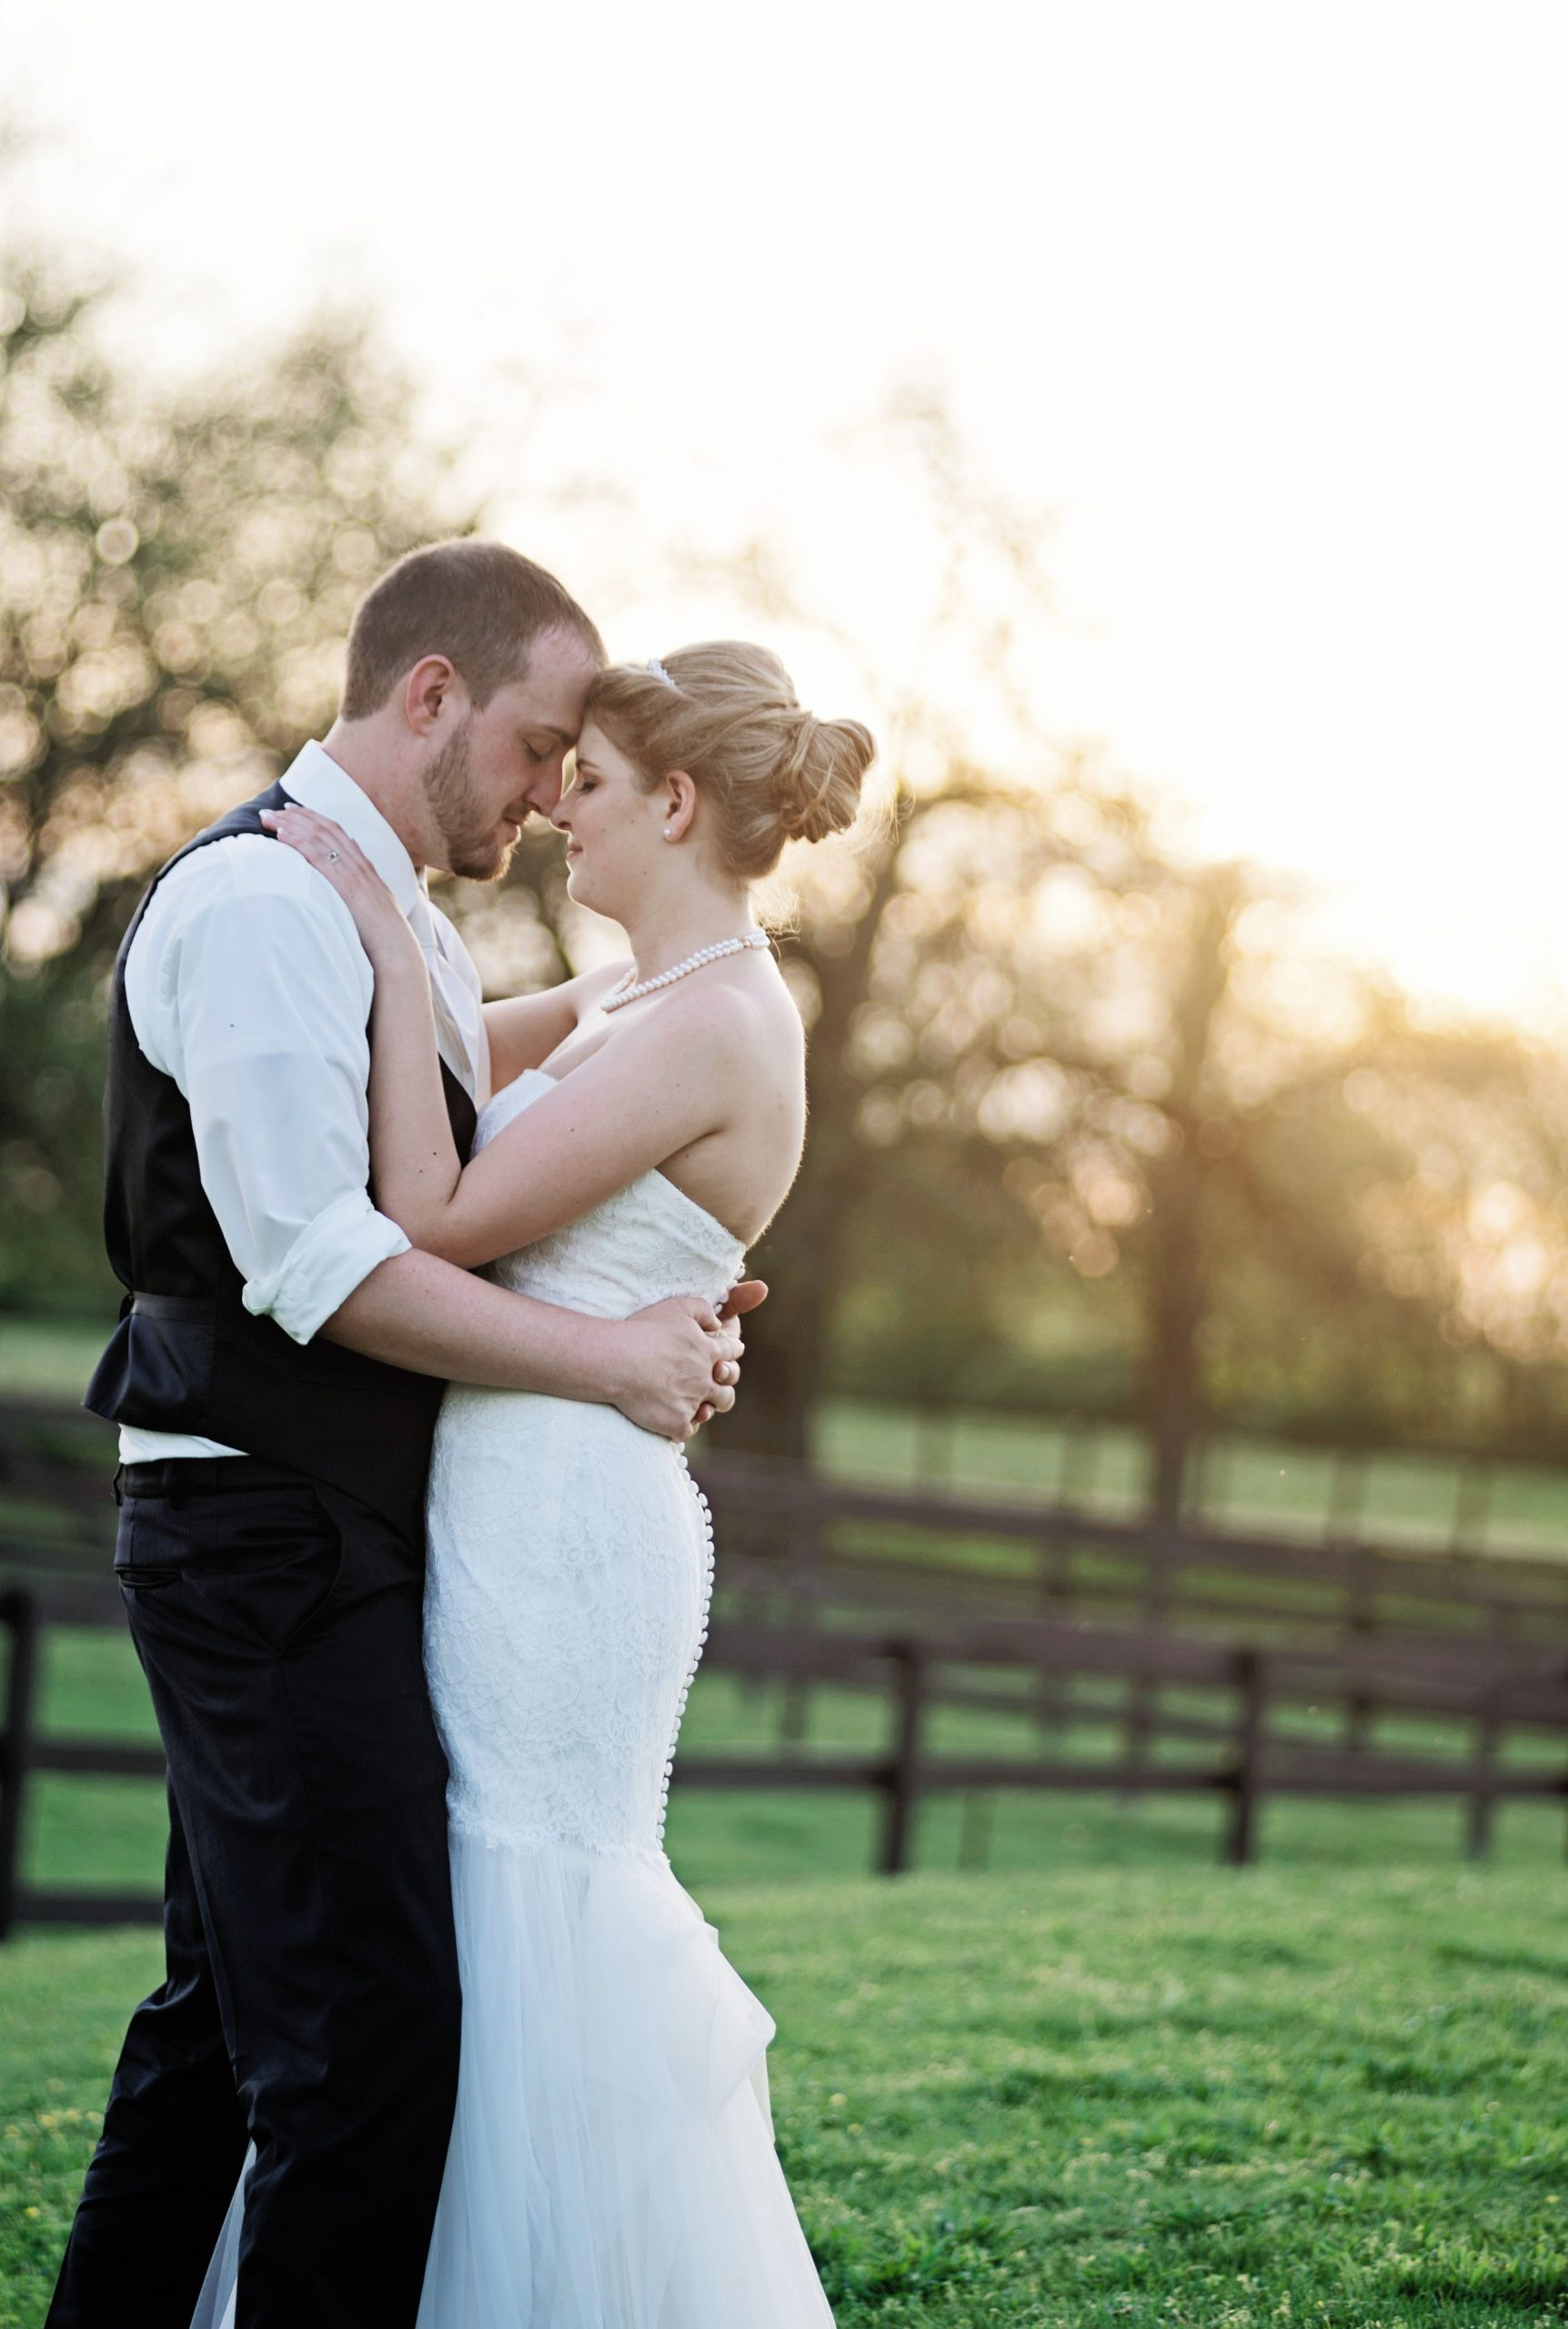 The sunlight hit just right for this happy newly wedded couple at Lakeview Farms in York, PA. Photographed by Lovefusion, the two look madly in love. Featured on Dream Weddings.